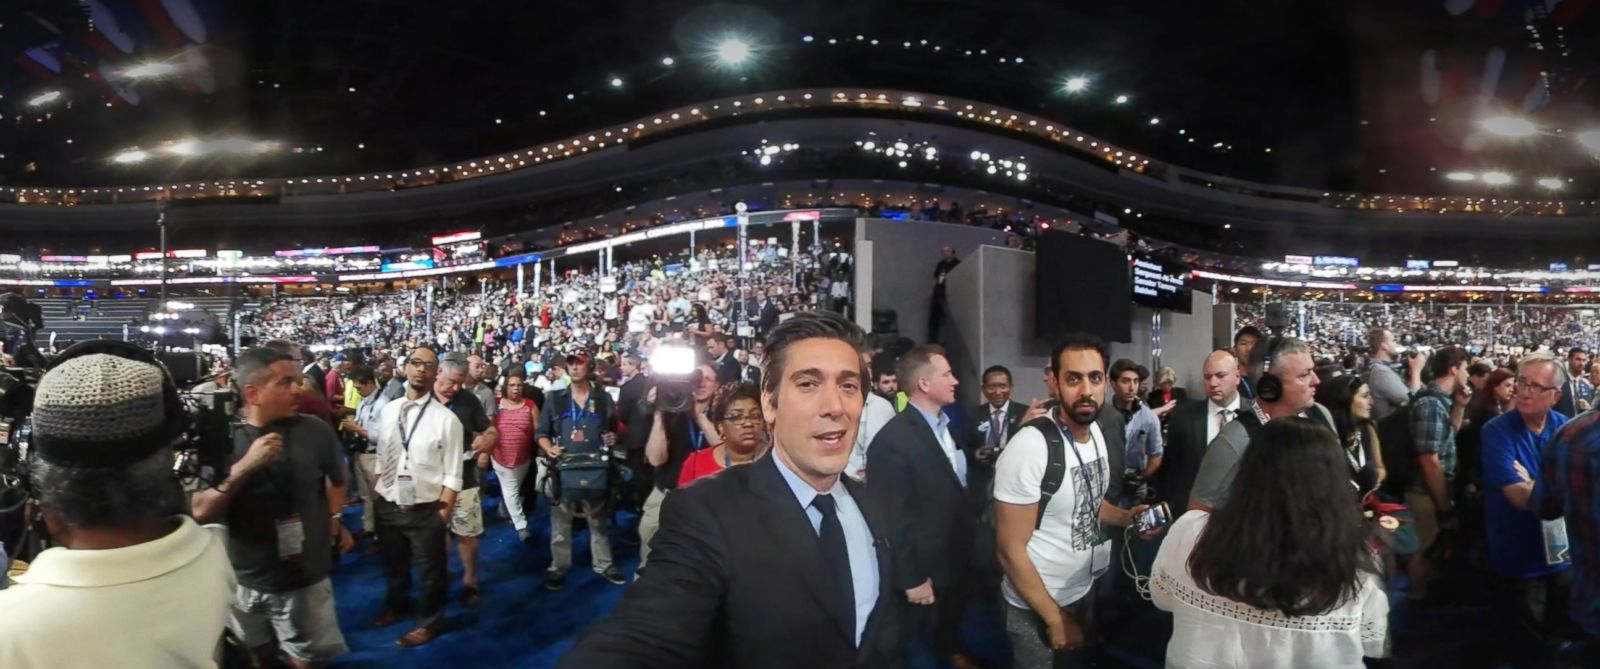 PHOTO: ABC World News Tonight Anchor David Muir tours the Democratic National Convention floor in this 360 video.